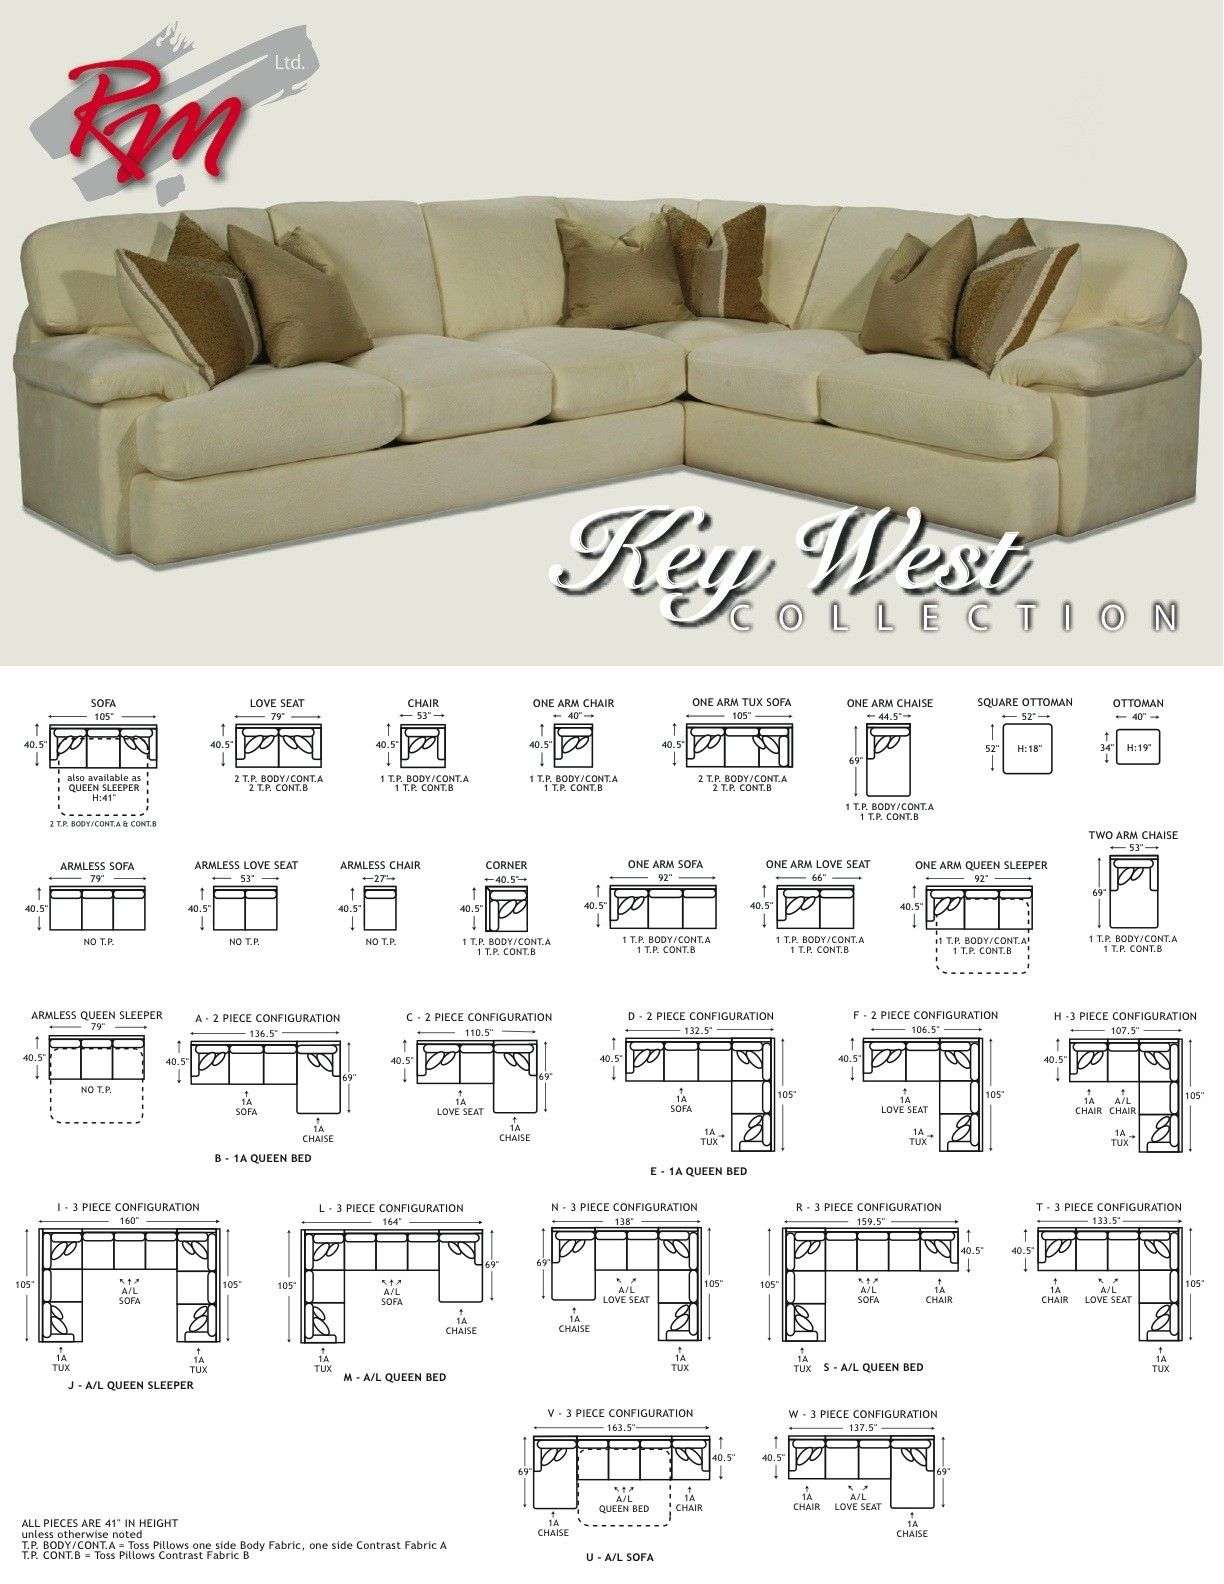 21 Supreme Couch Configuration Furniture Layout To Makes You More Comfortable Stunninghomedecor Com Furniture Layout Sofa Layout Living Room Furniture Arrangement